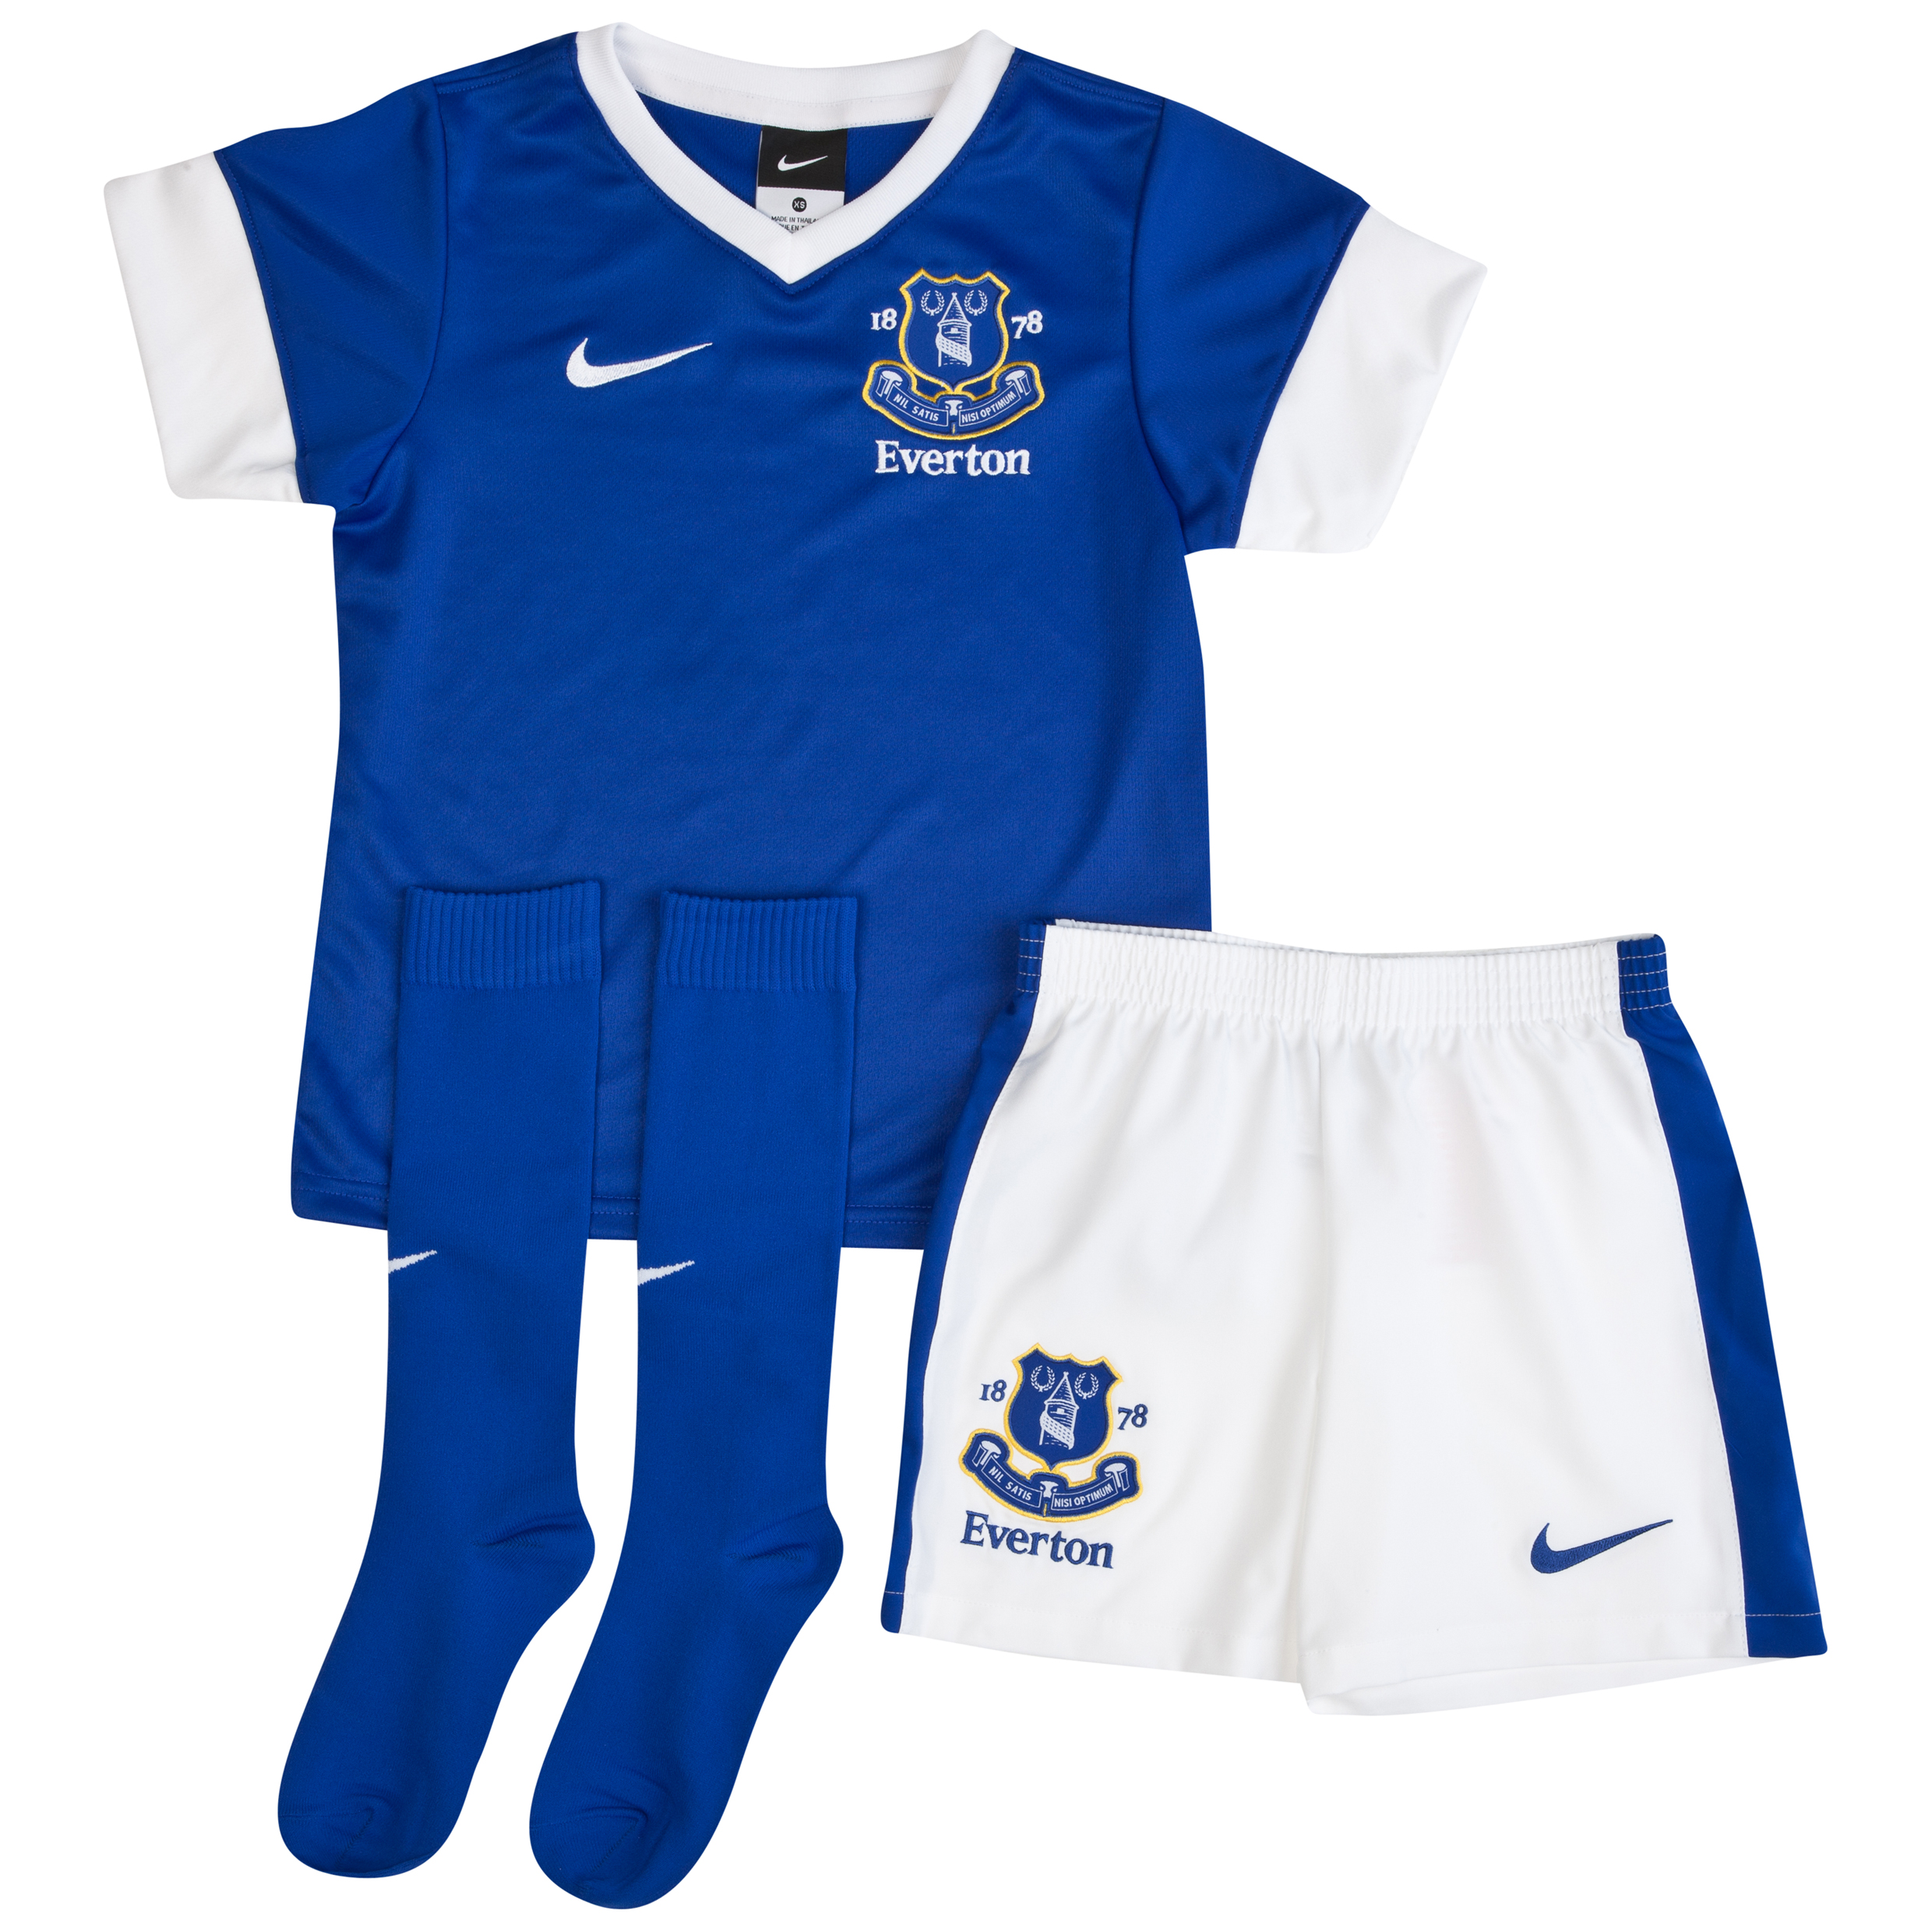 Everton Home Infant Kit 2012/13